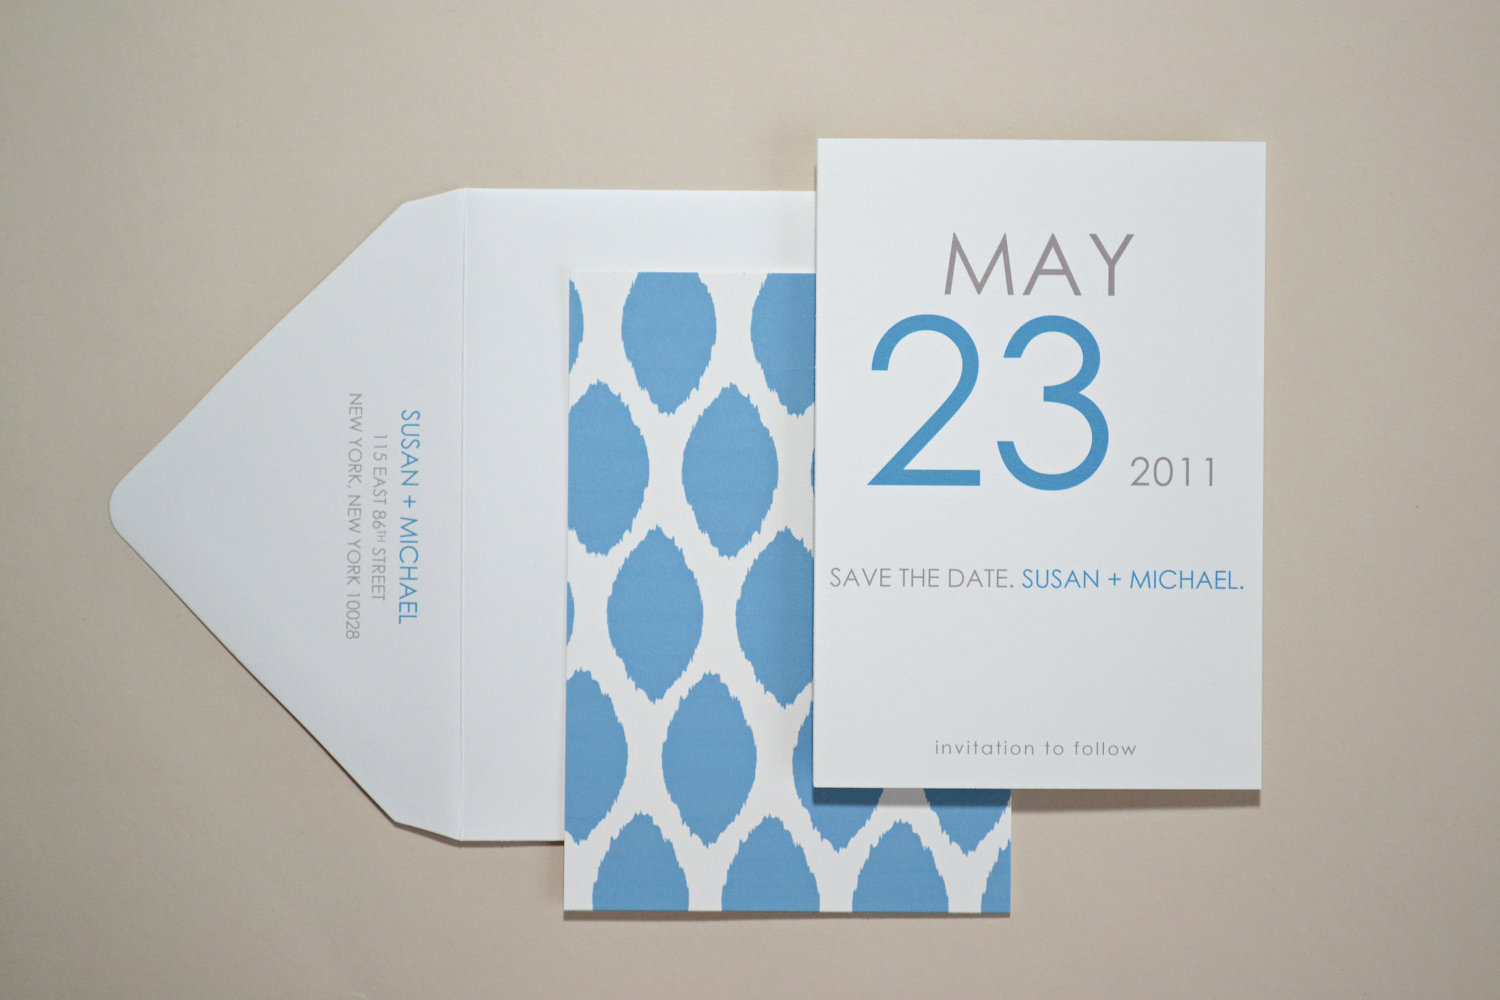 Unique-wedding-save-the-dates-calendar-design-invitations-on-etsy-modern-cool-colors.original